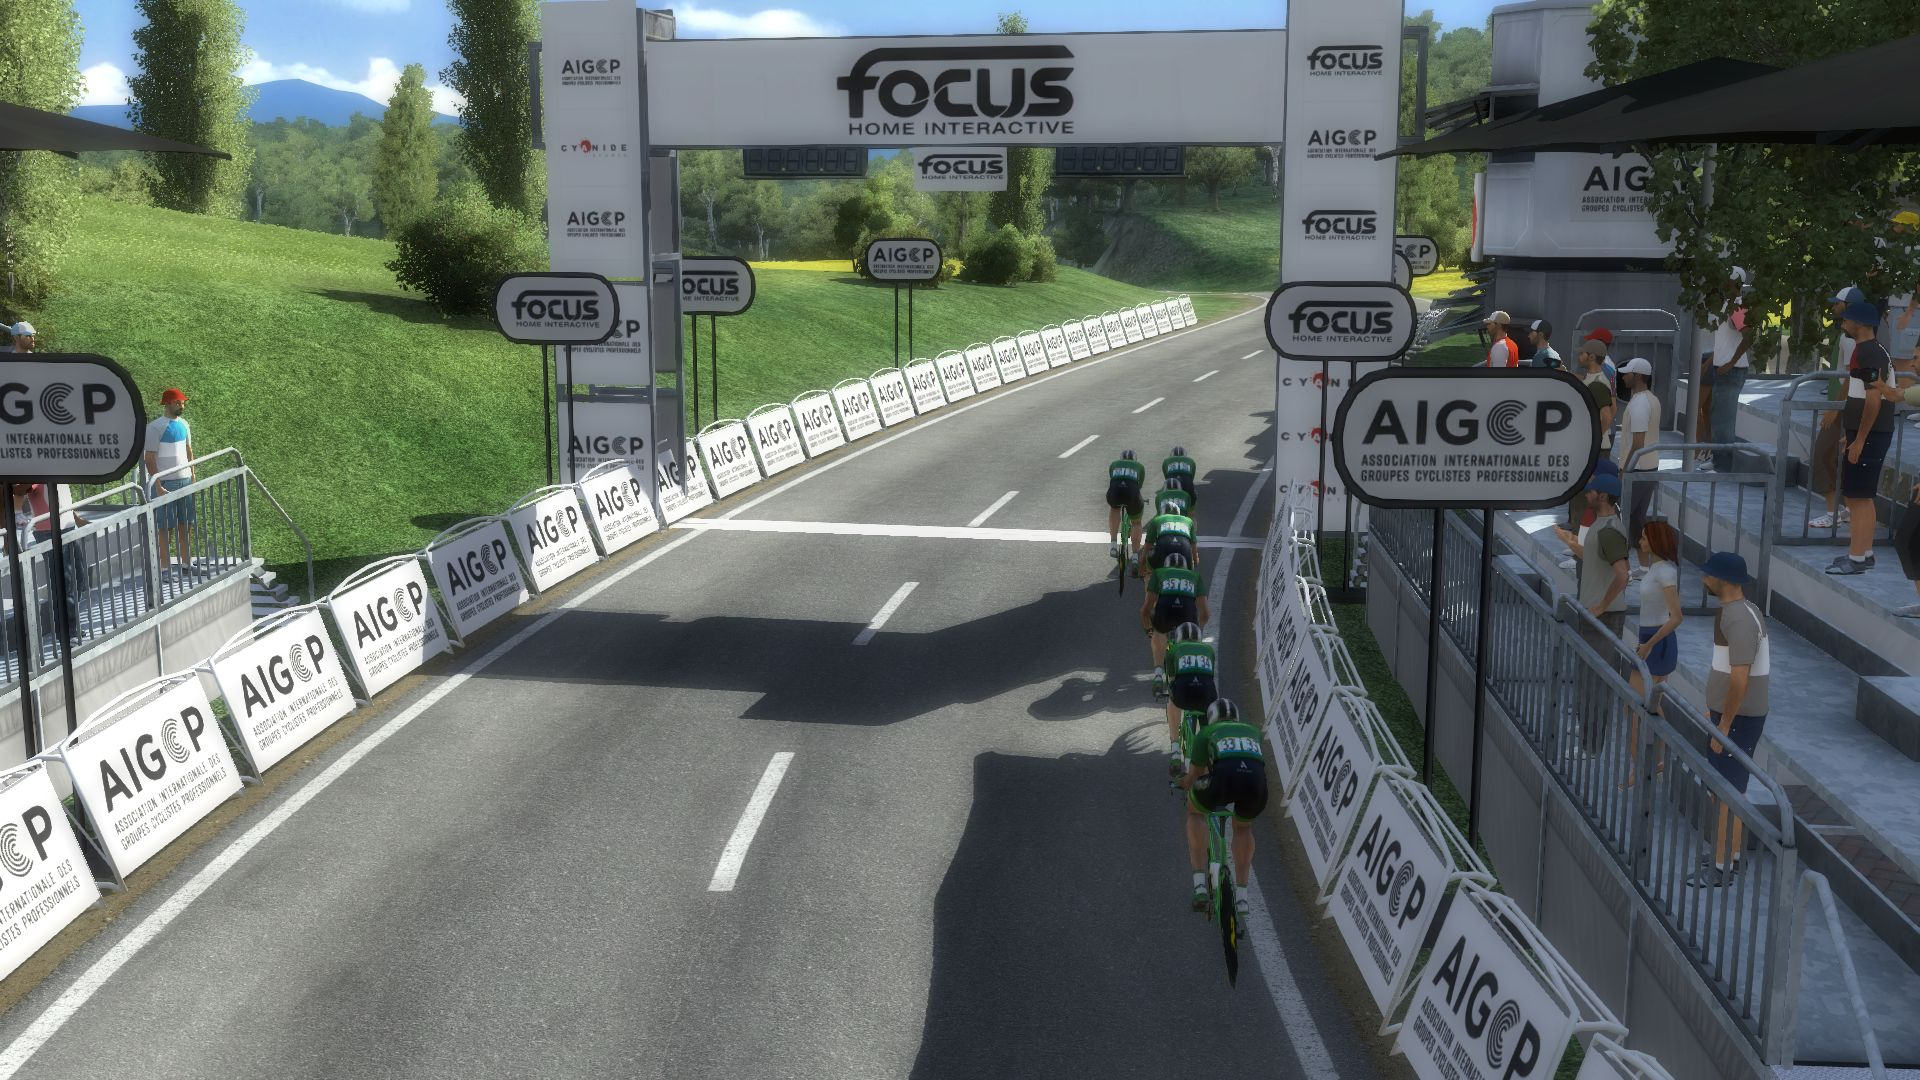 pcmdaily.com/images/mg/2019/Races/HC/Slovenie/mg19_slo_s01_28.jpg